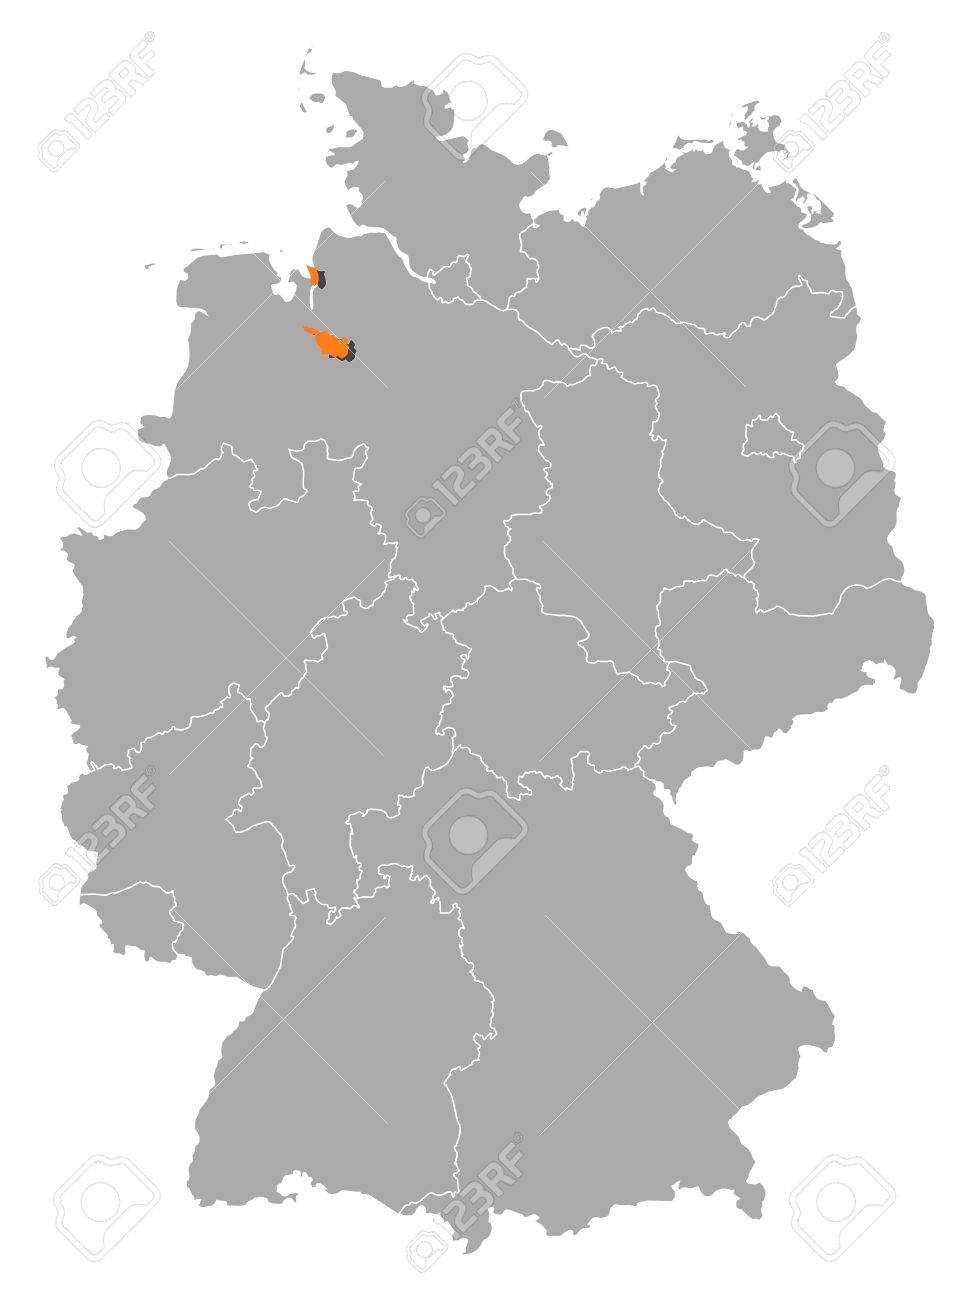 Political Map Of Germany With The Several States Where Bremen - Germany map bremen